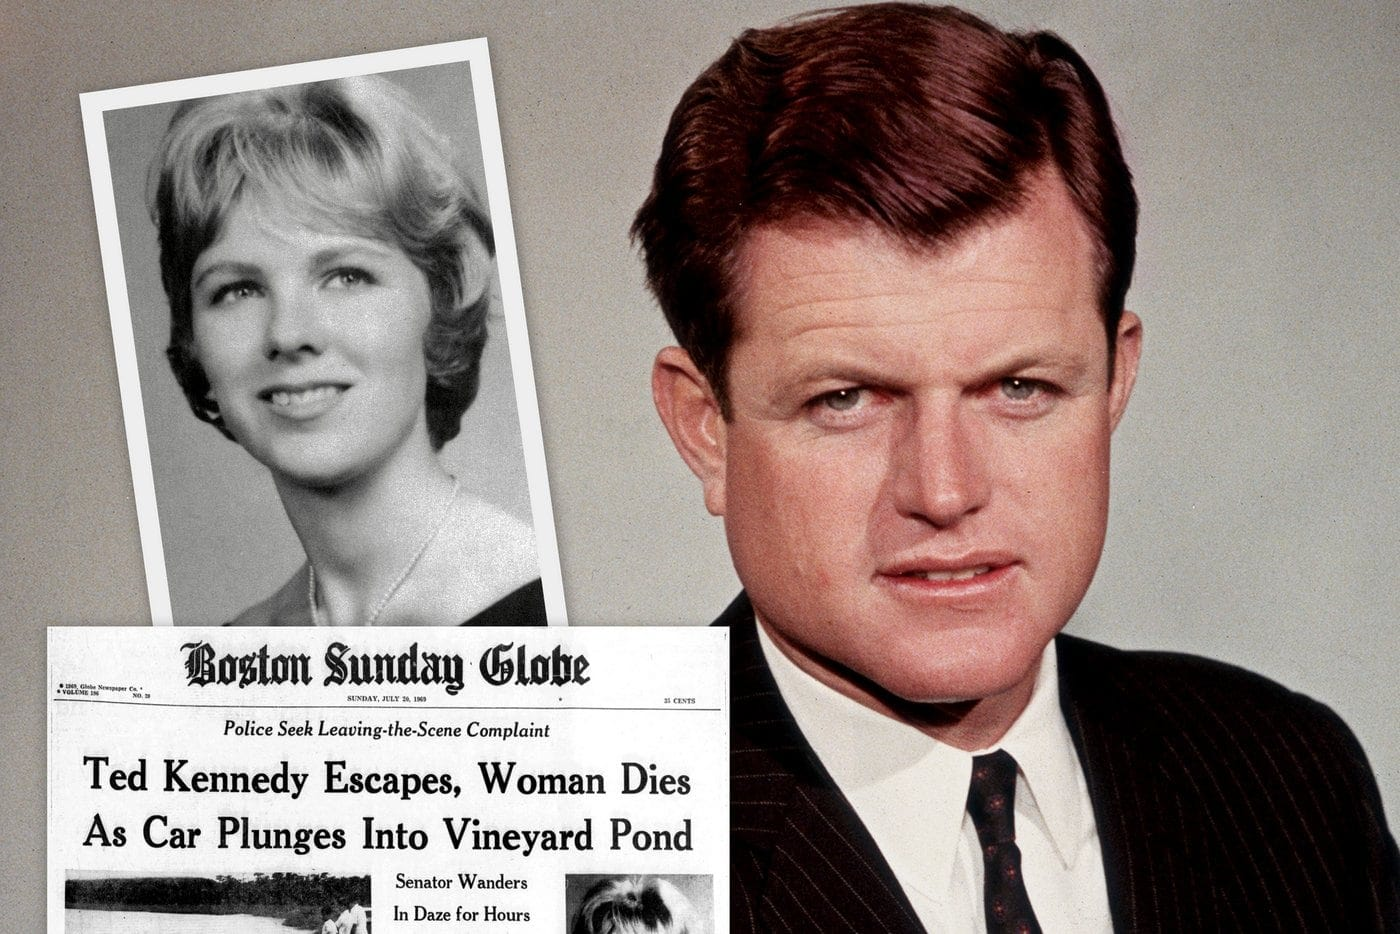 Ted Kennedy's Chappaquiddick incident: The 1969 car crash that ...